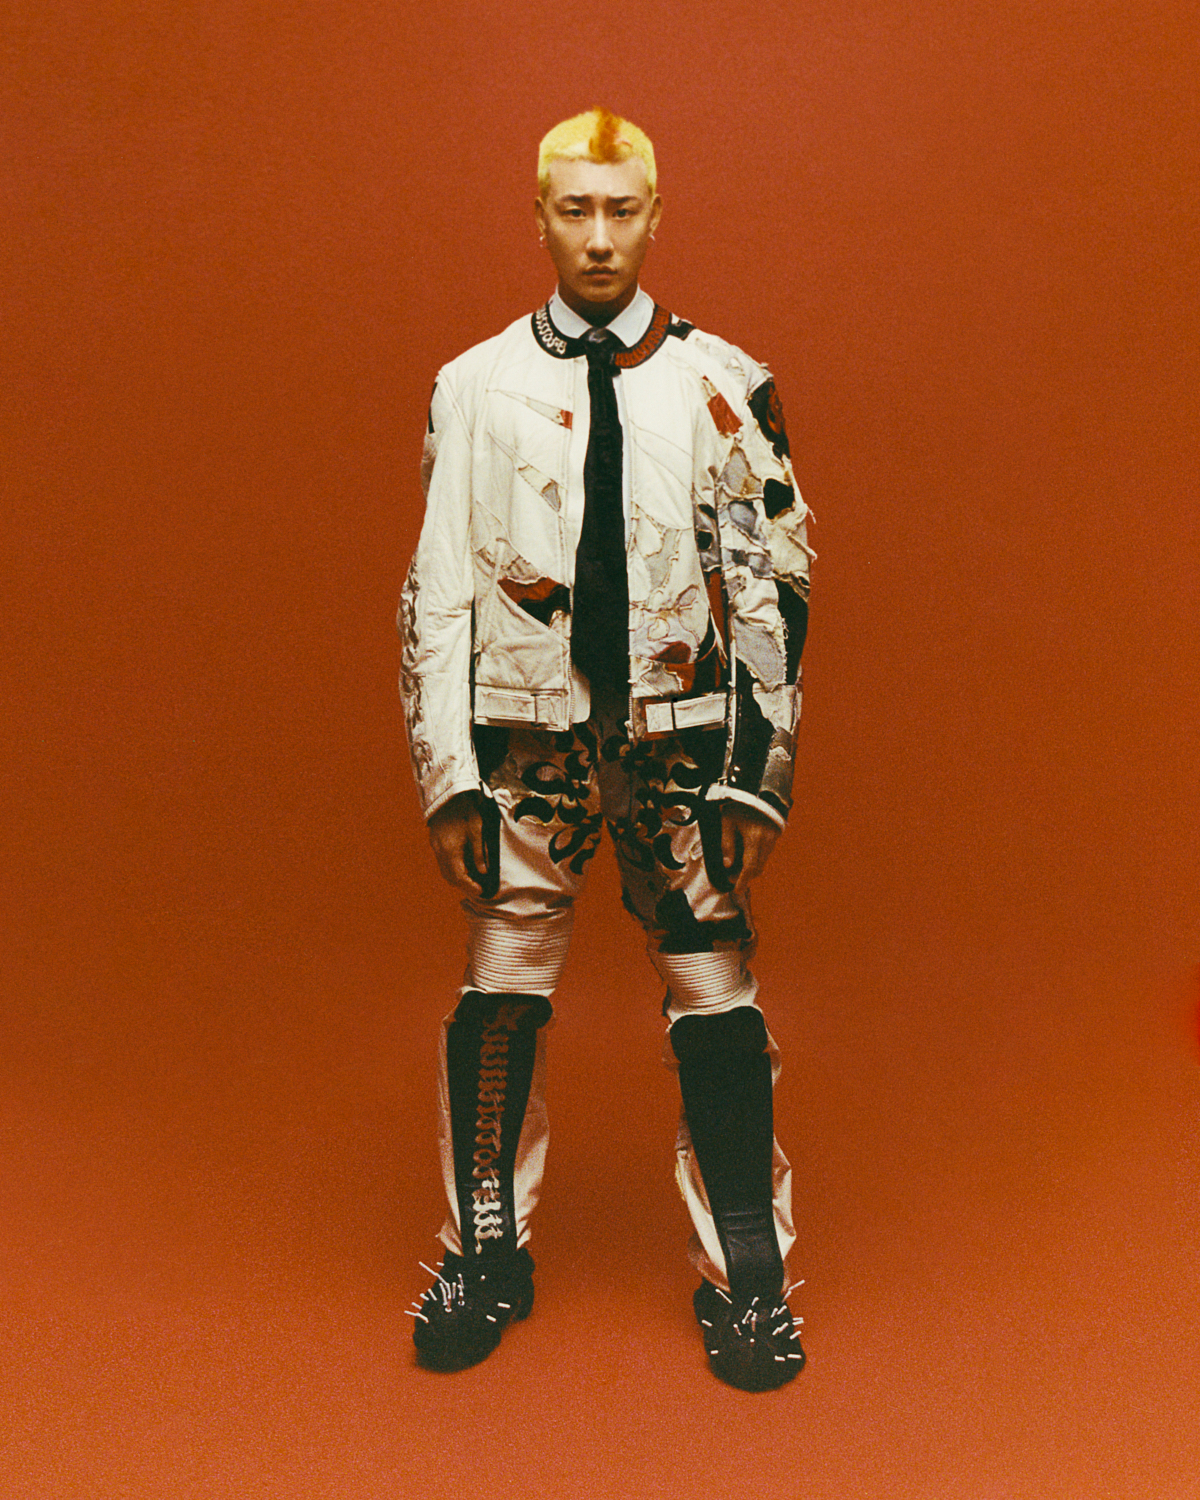 a portrait of a person with bleached hair wearing a worn leather biker jacket against a red background